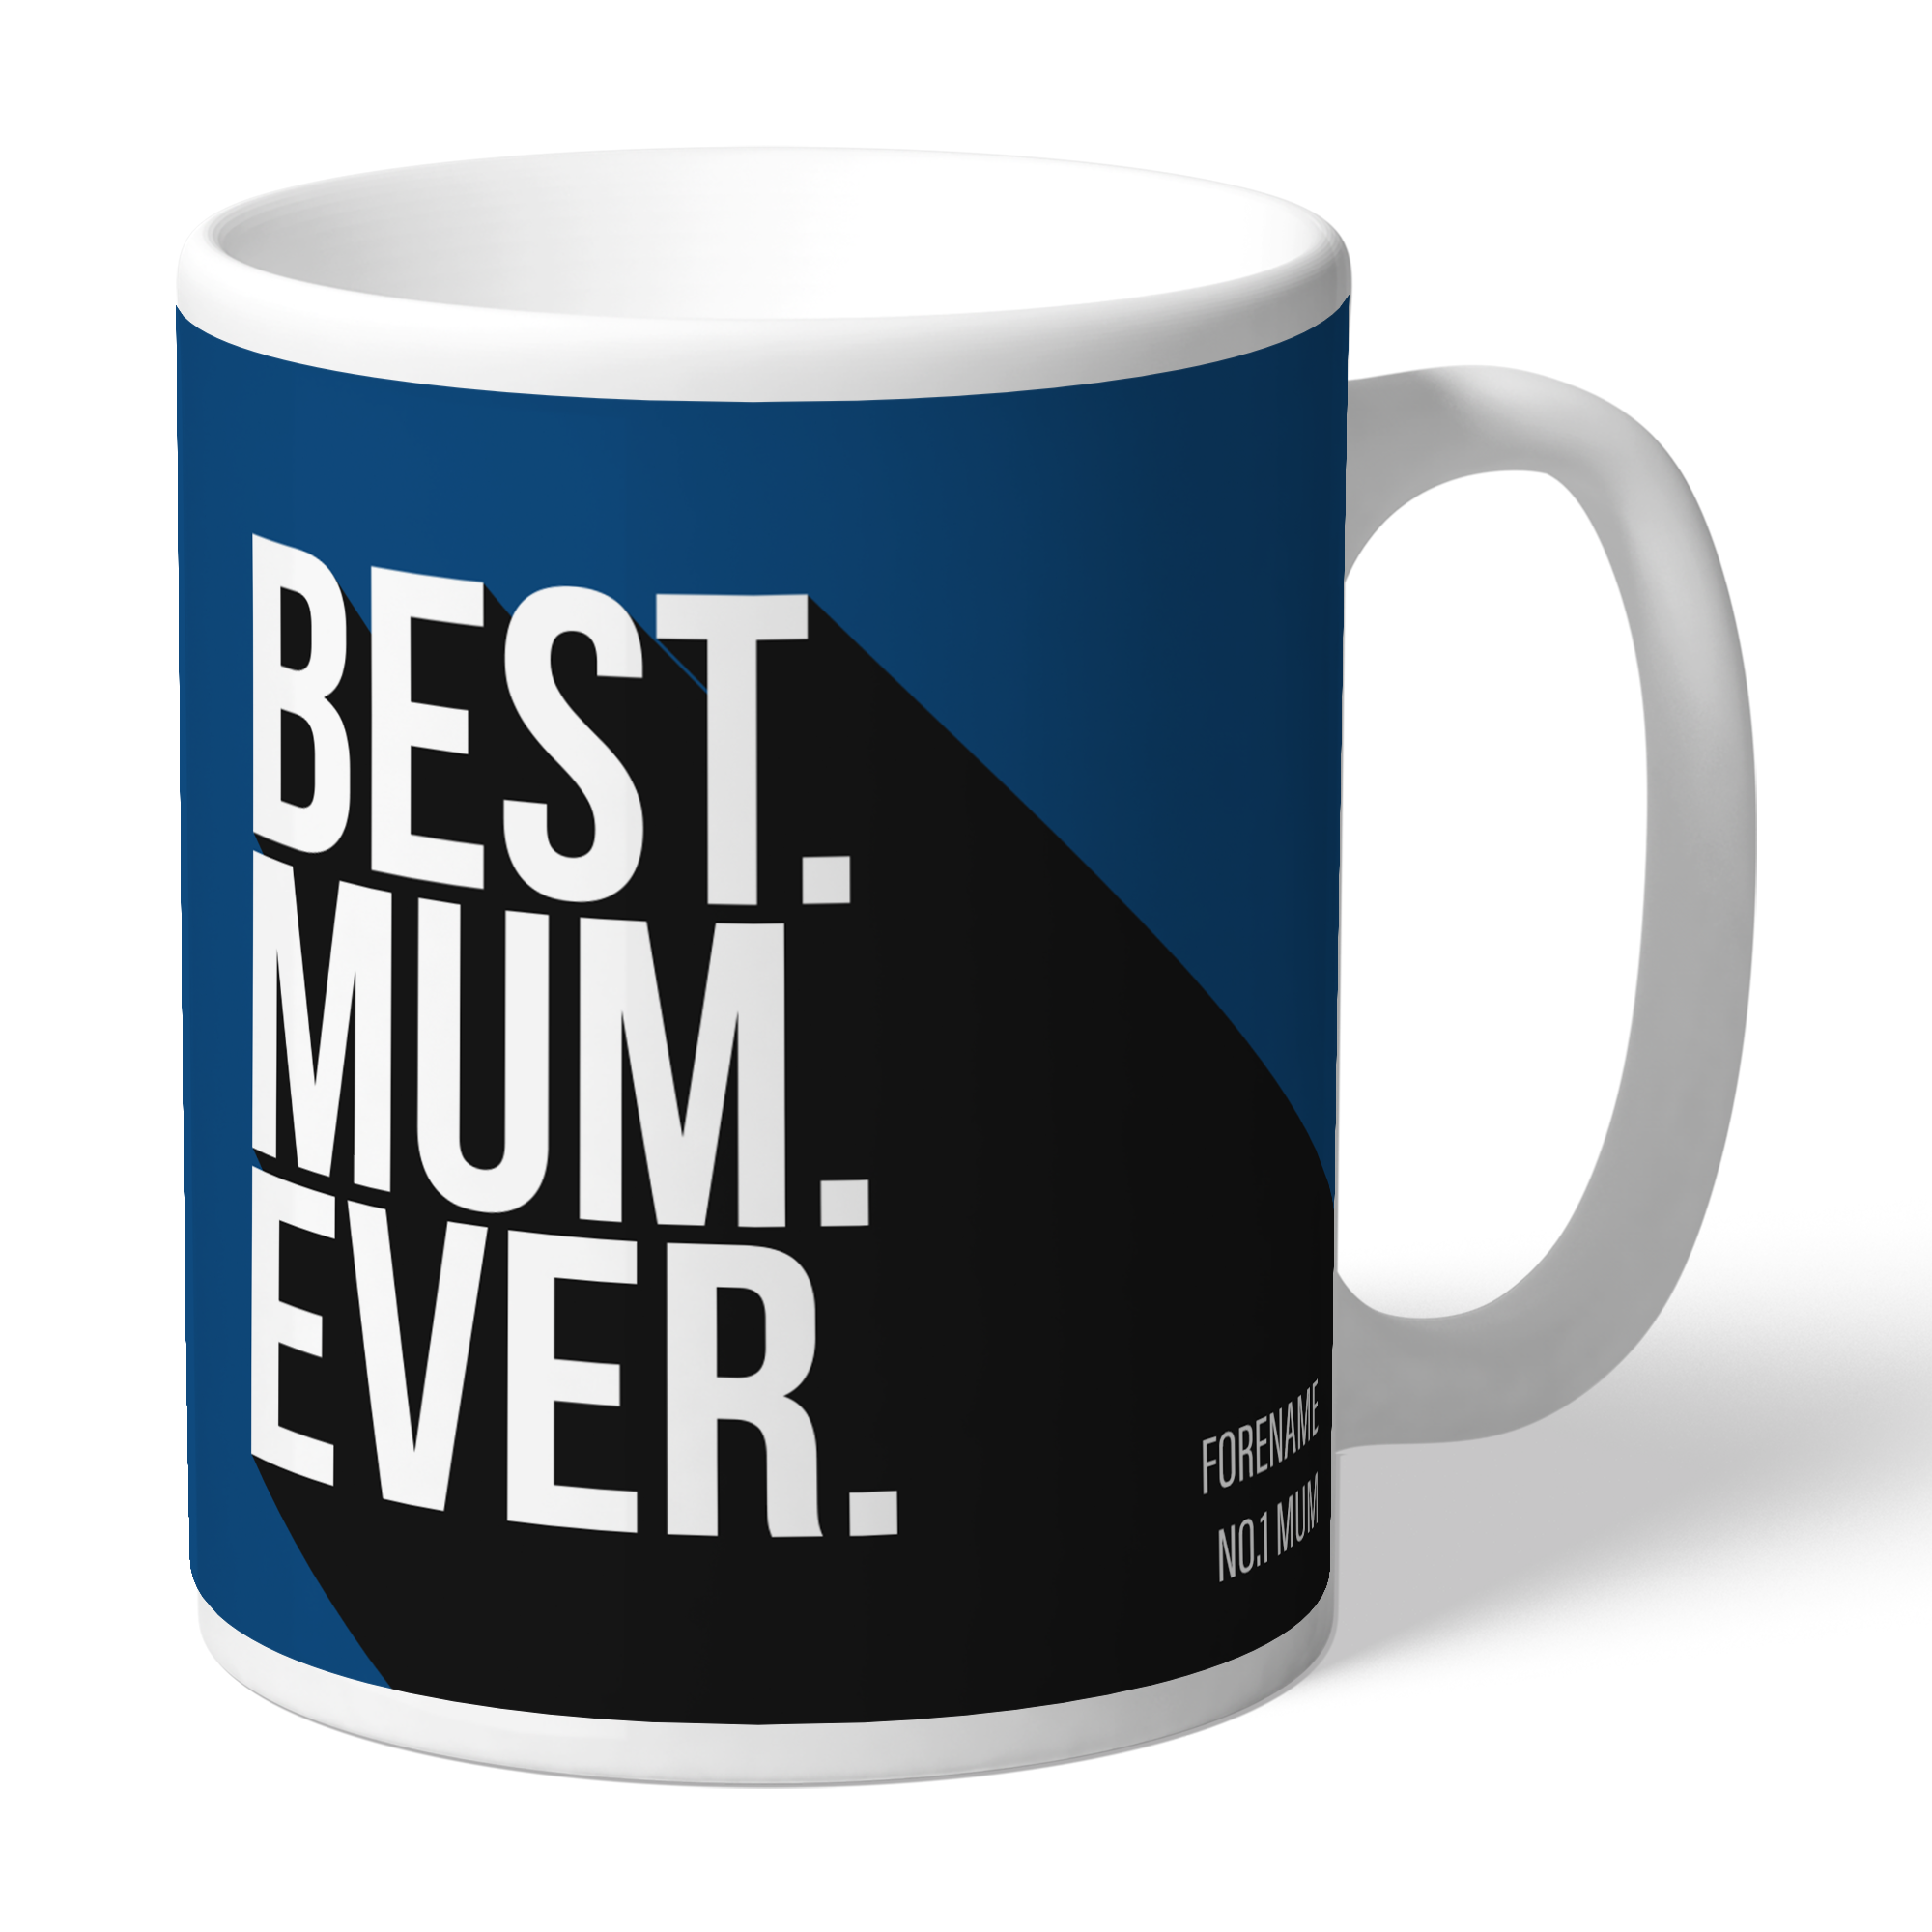 Cardiff City Best Mum Ever Mug